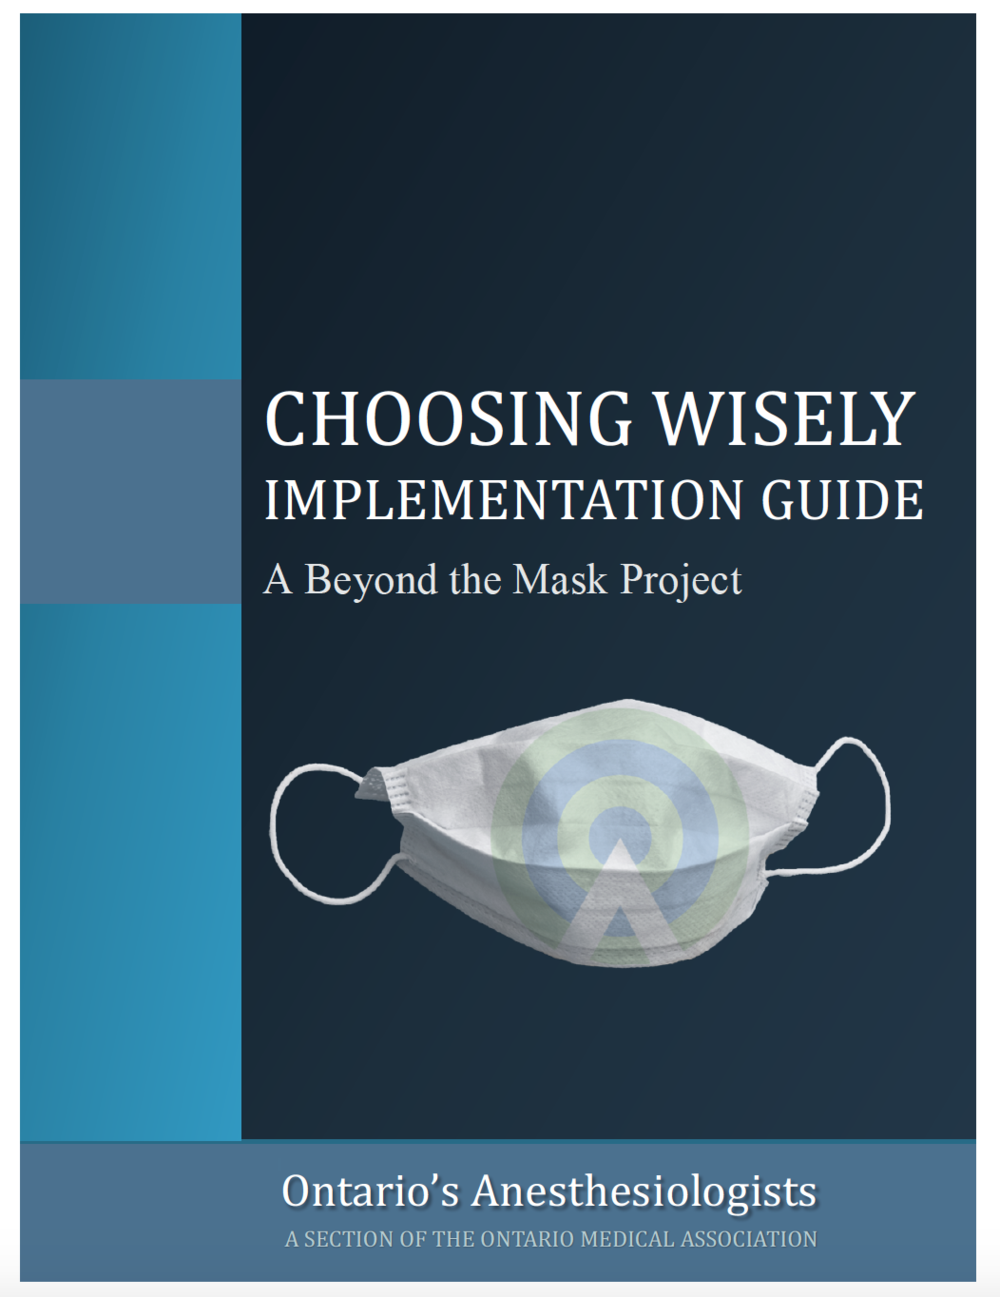 Click here to download the full implementation guide